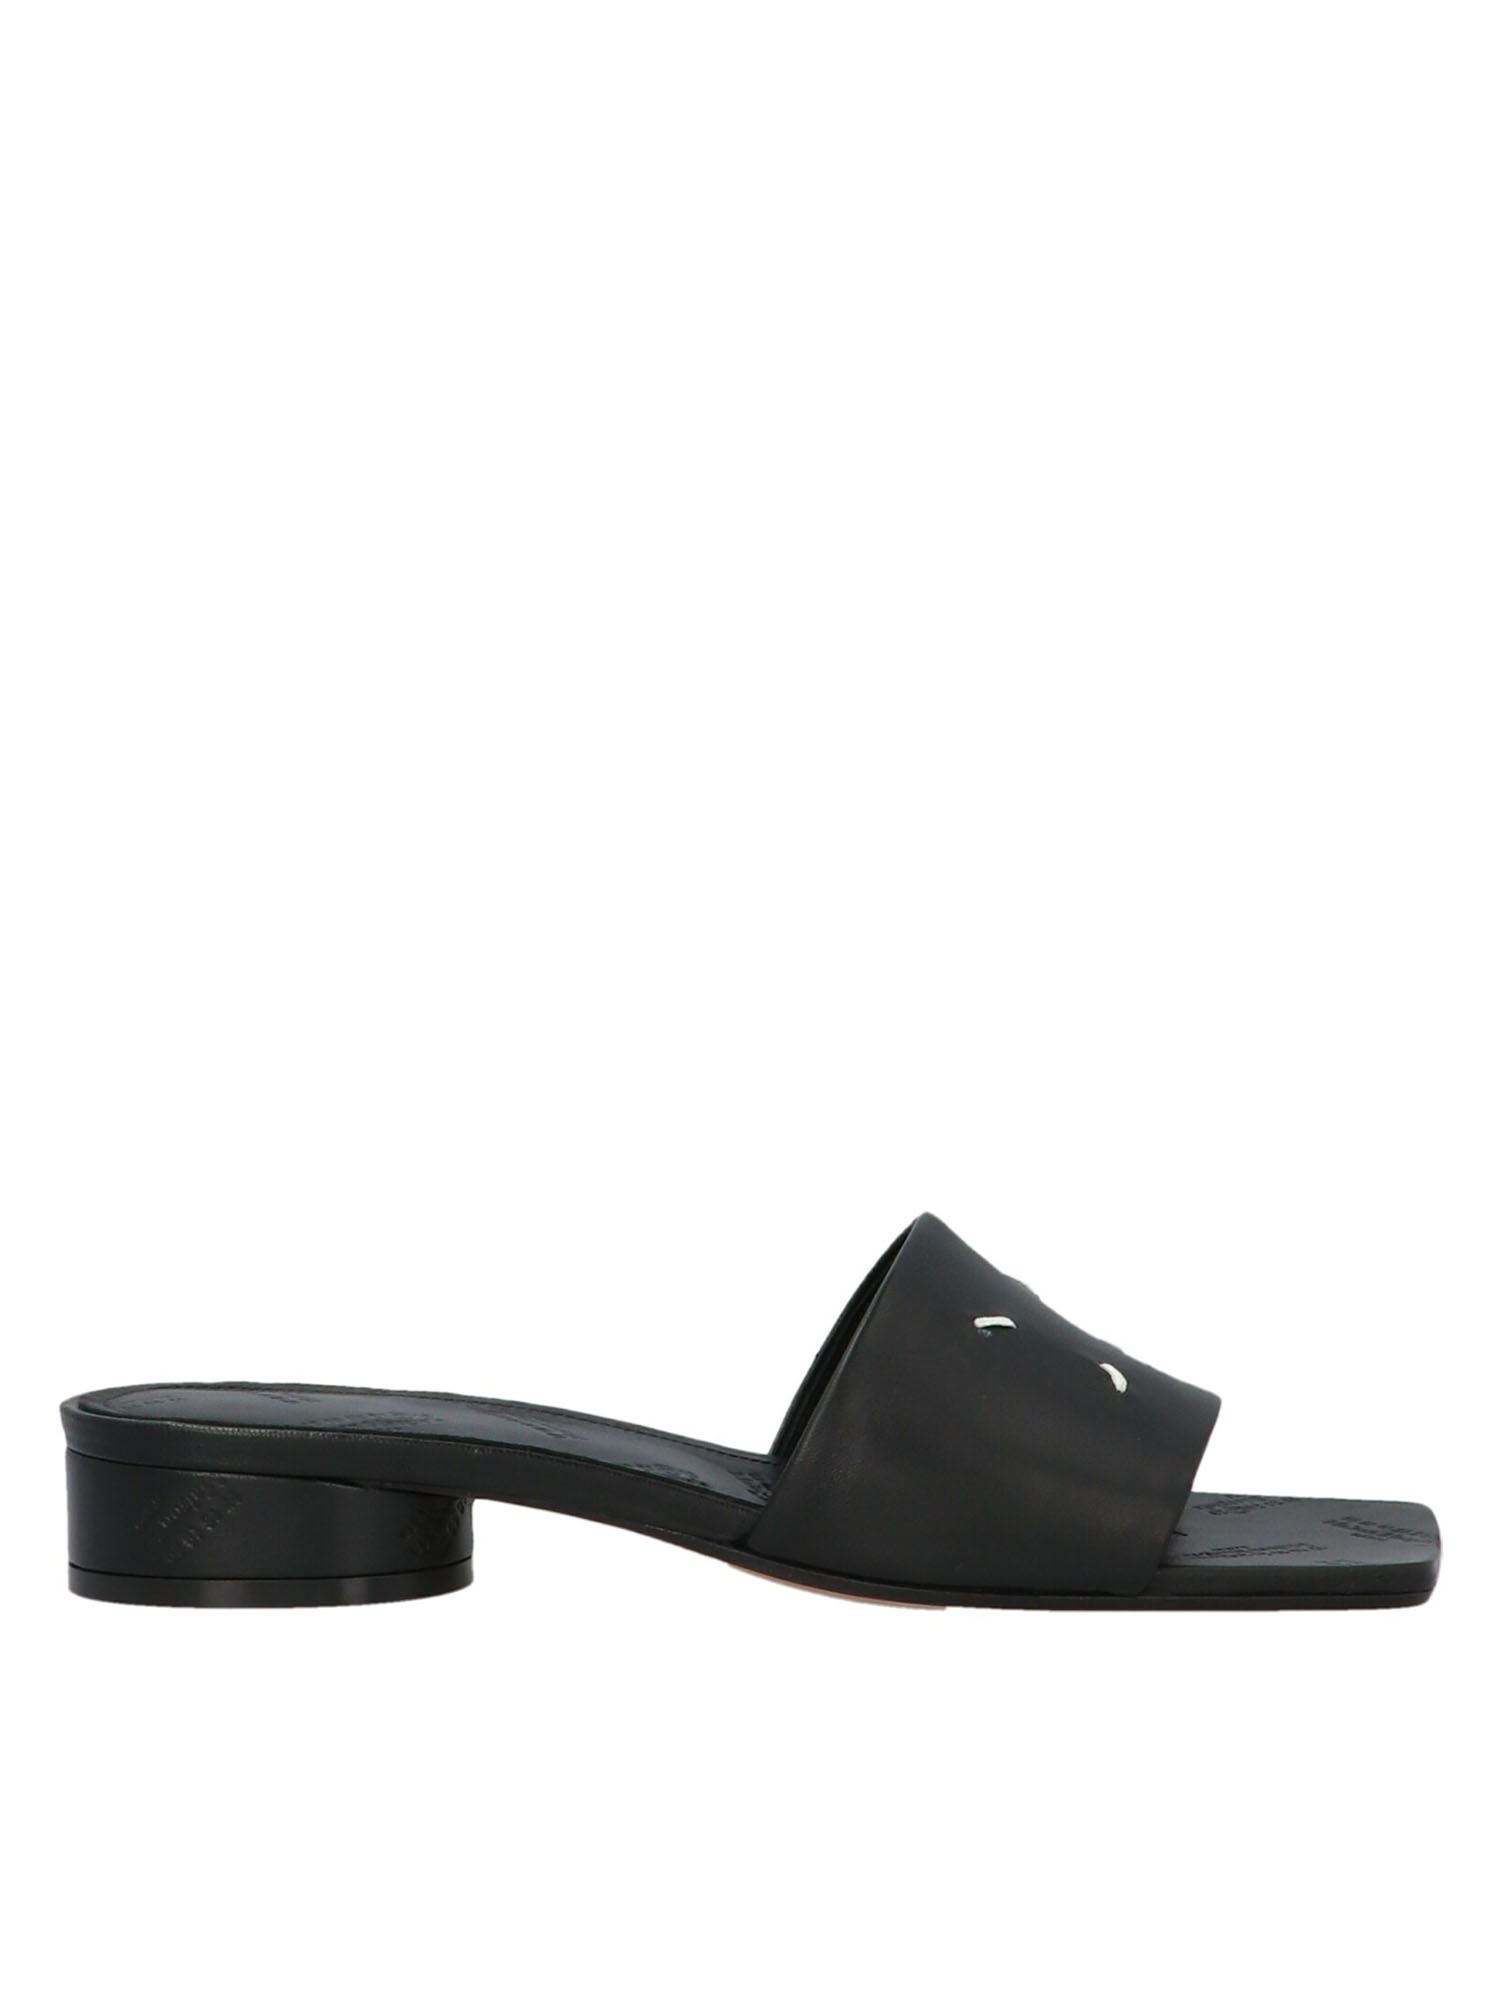 Maison Margiela 4-STITCHES SANDALS IN BLACK